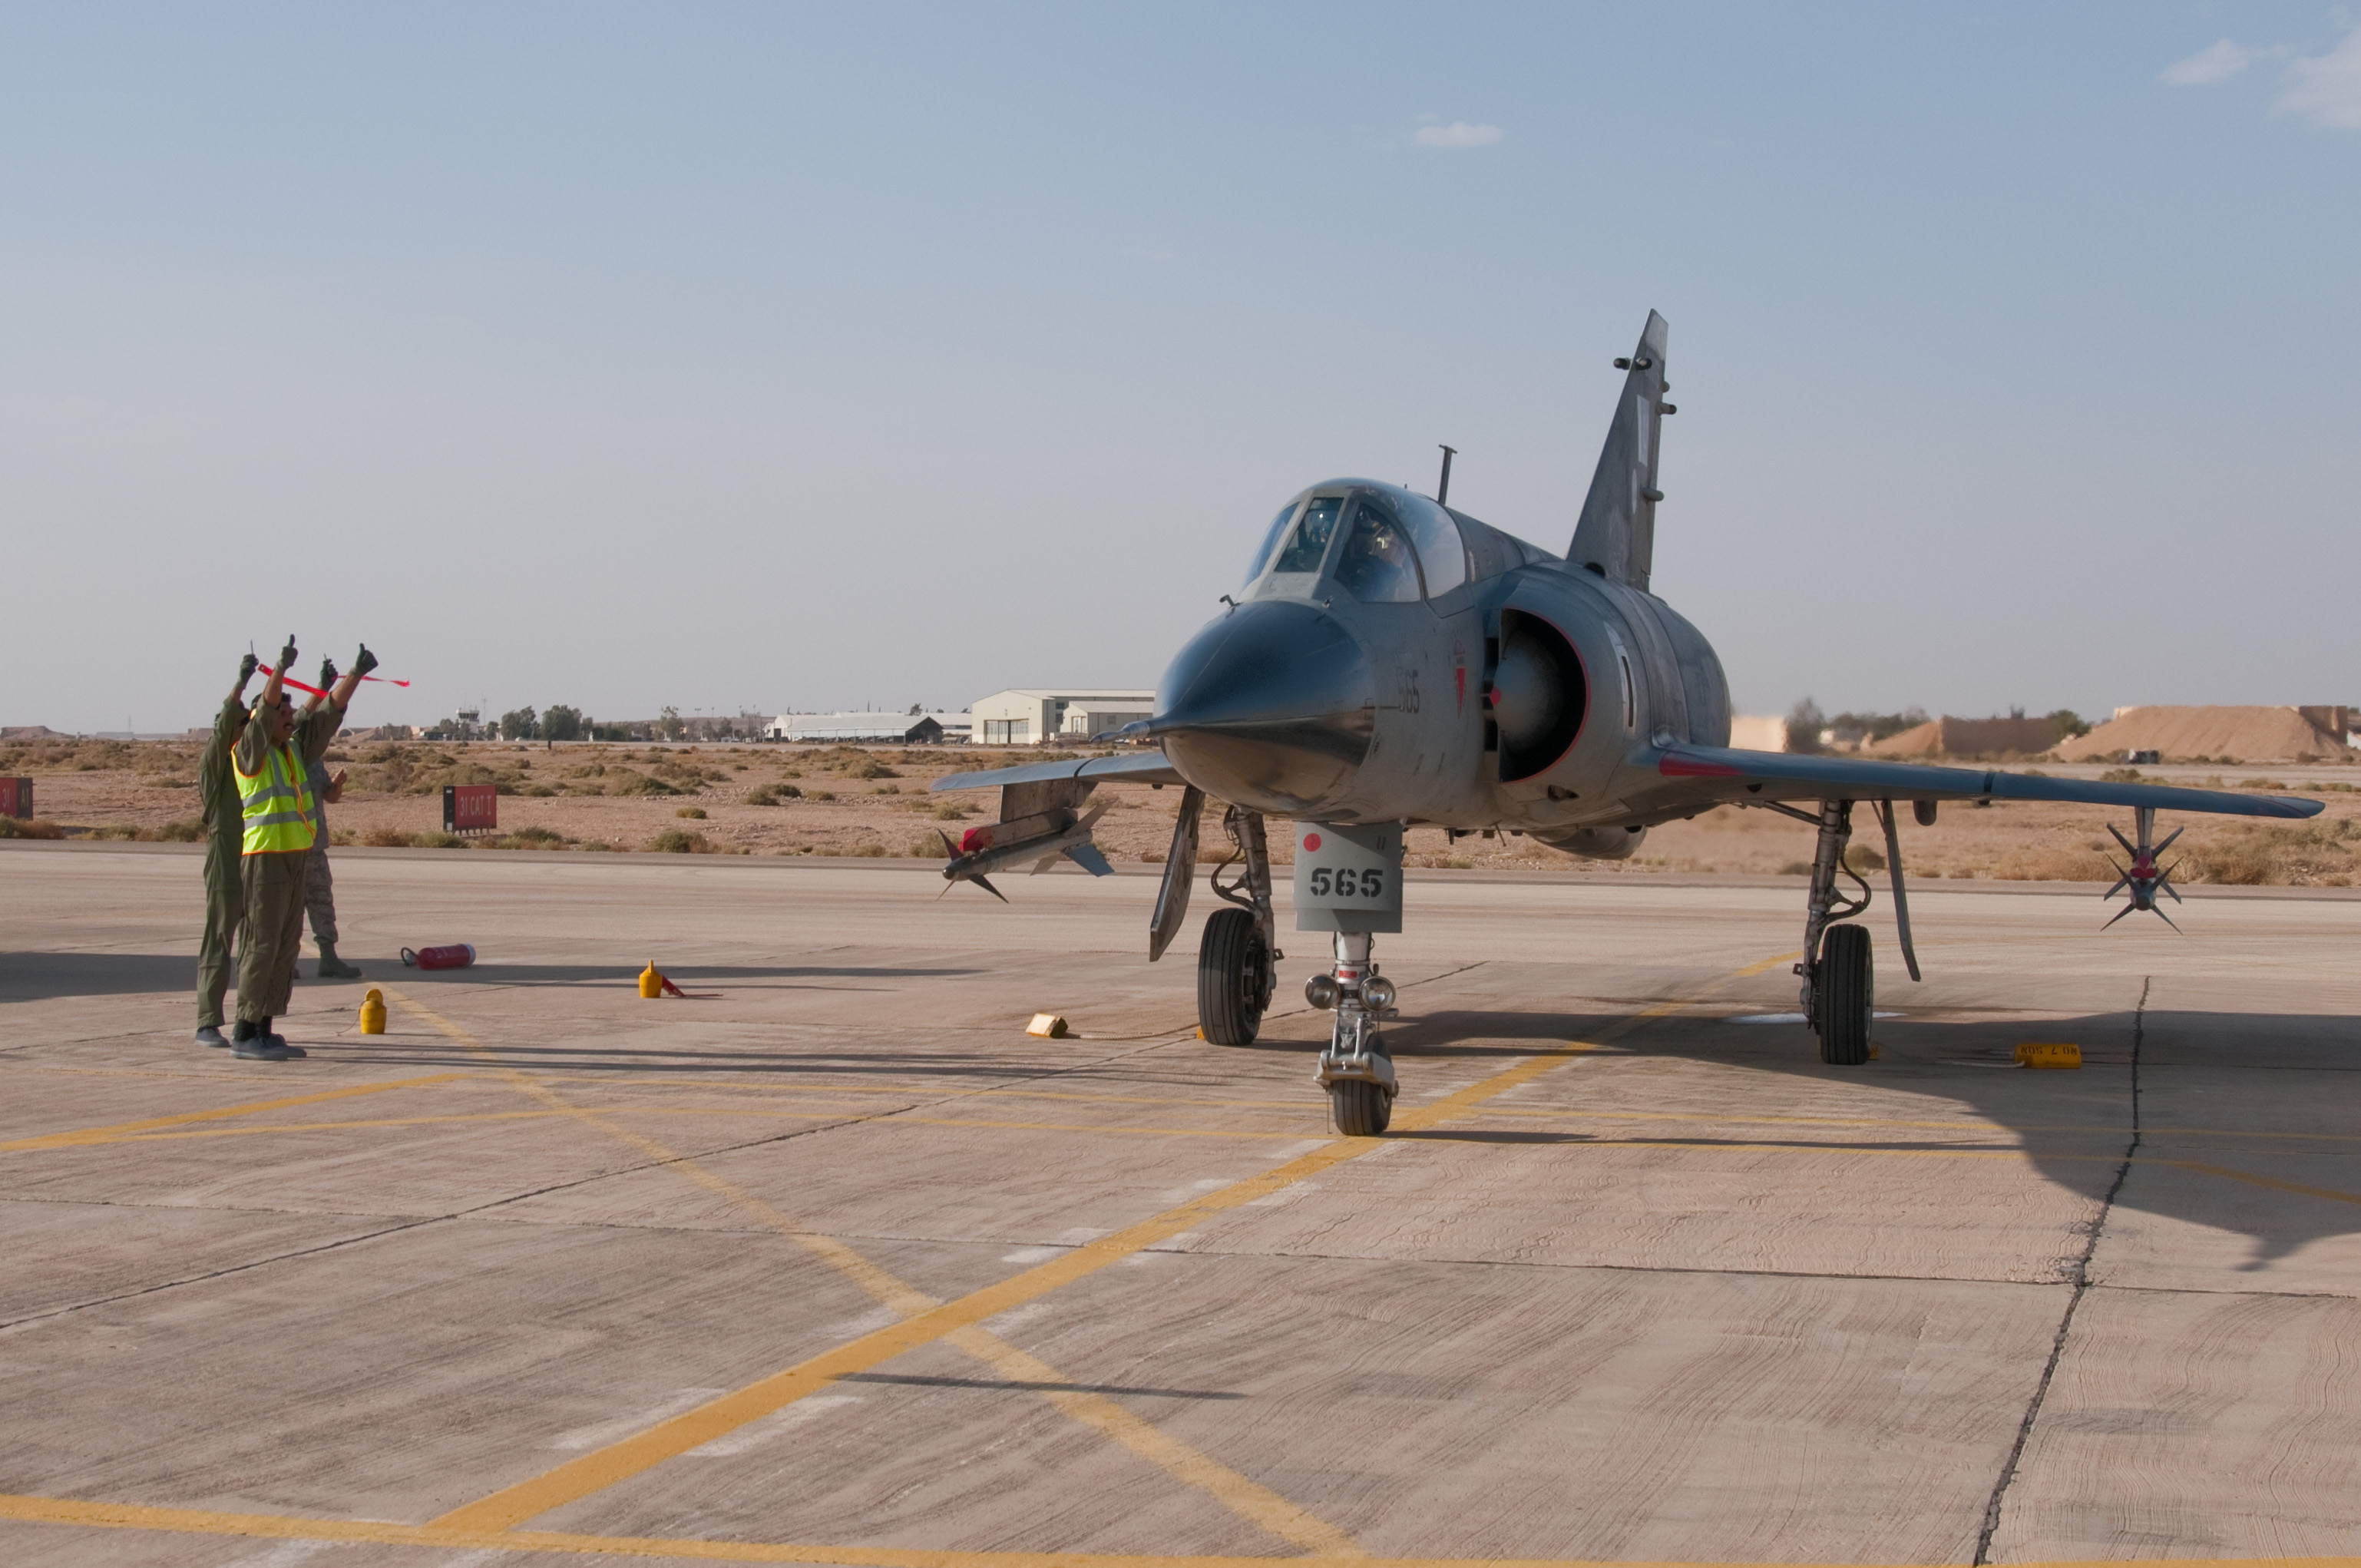 hal jet trainer successfully tested